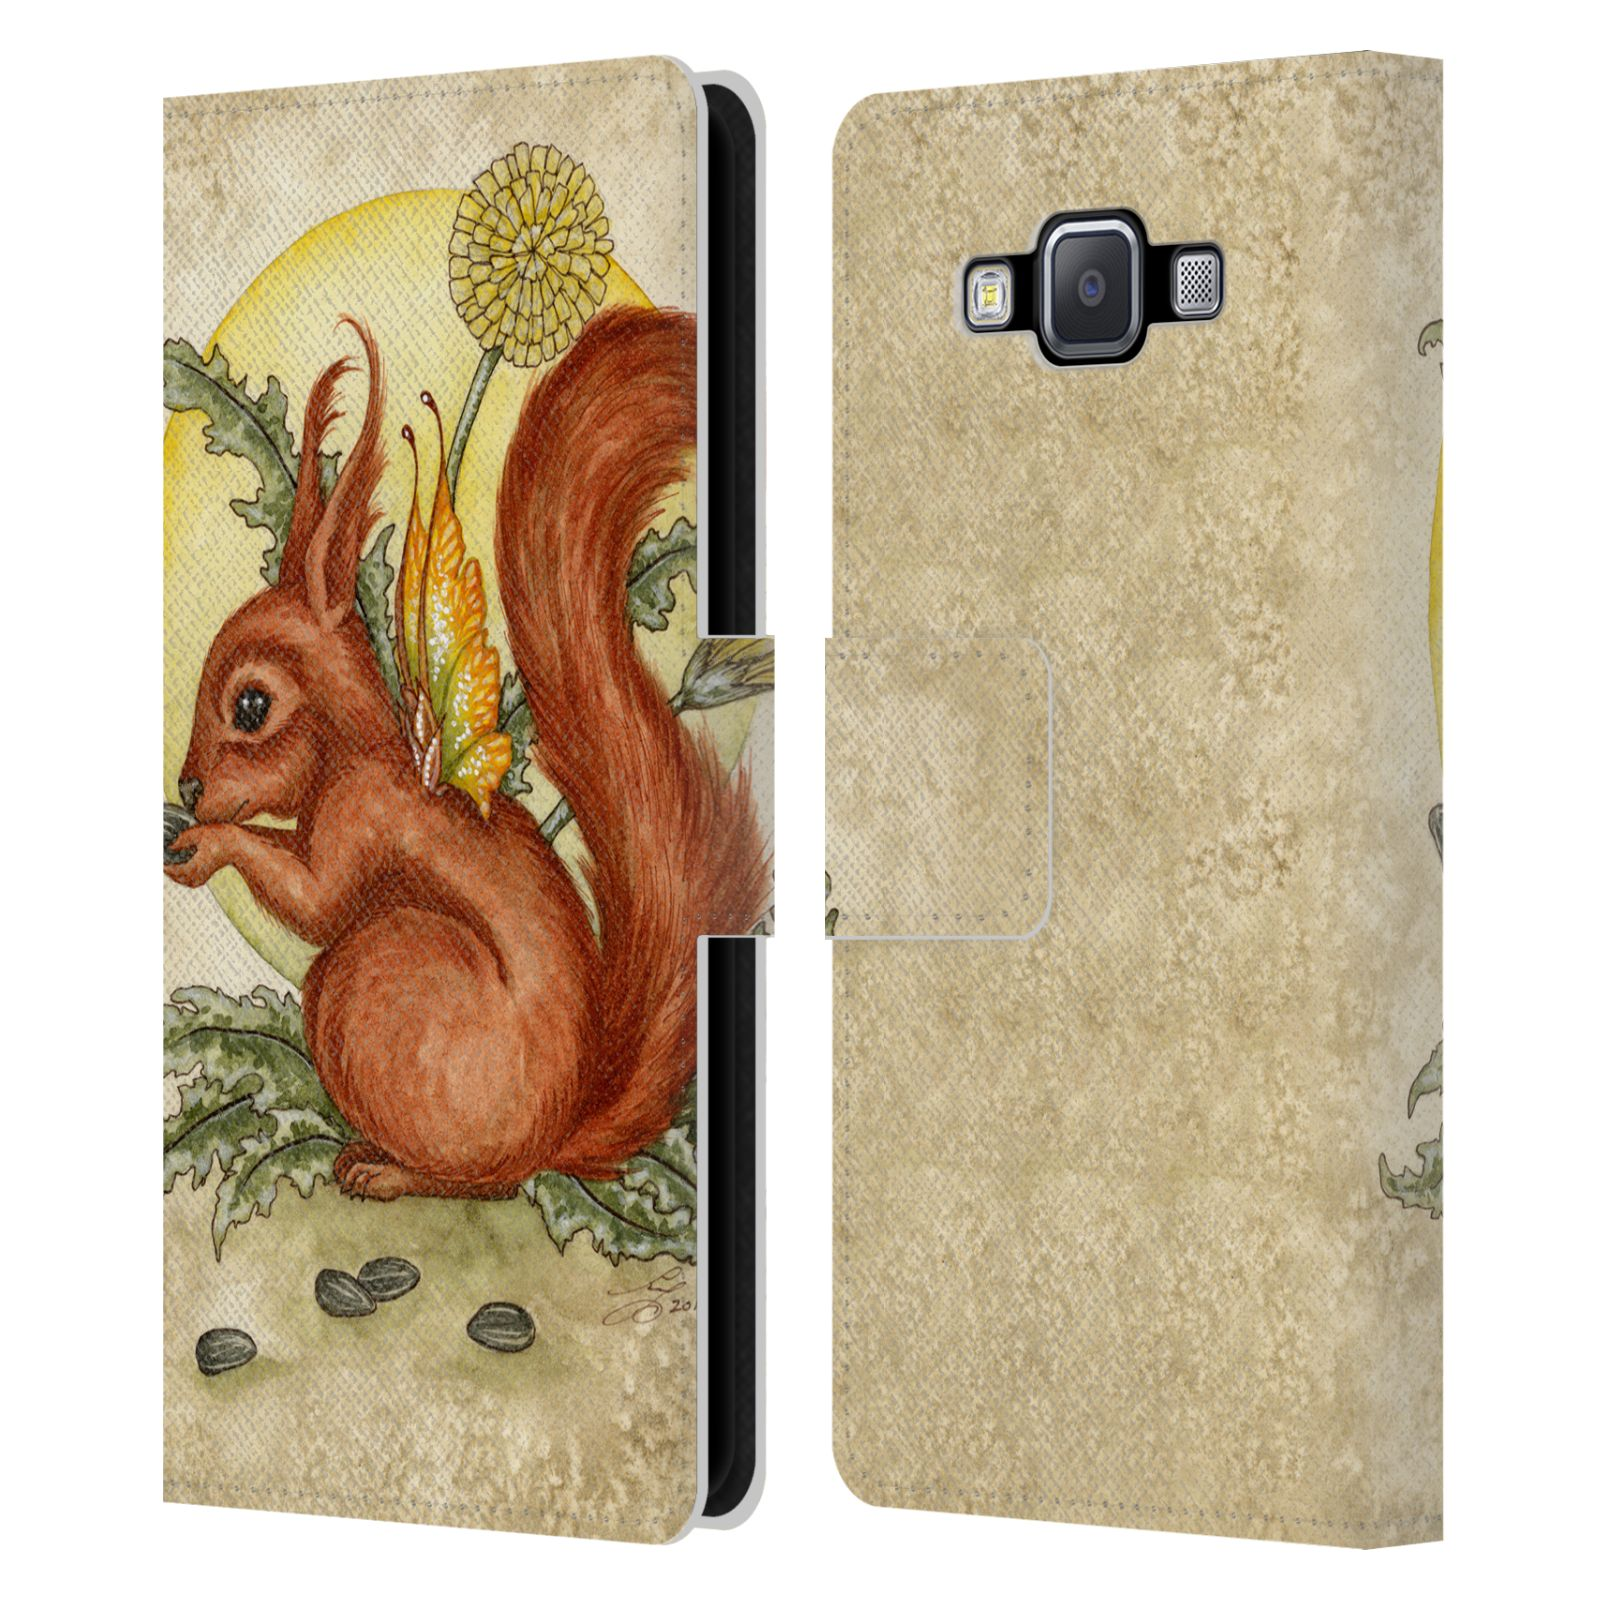 OFFICIAL-AMY-BROWN-MYTHICAL-LEATHER-BOOK-WALLET-CASE-COVER-FOR-SAMSUNG-PHONES-2